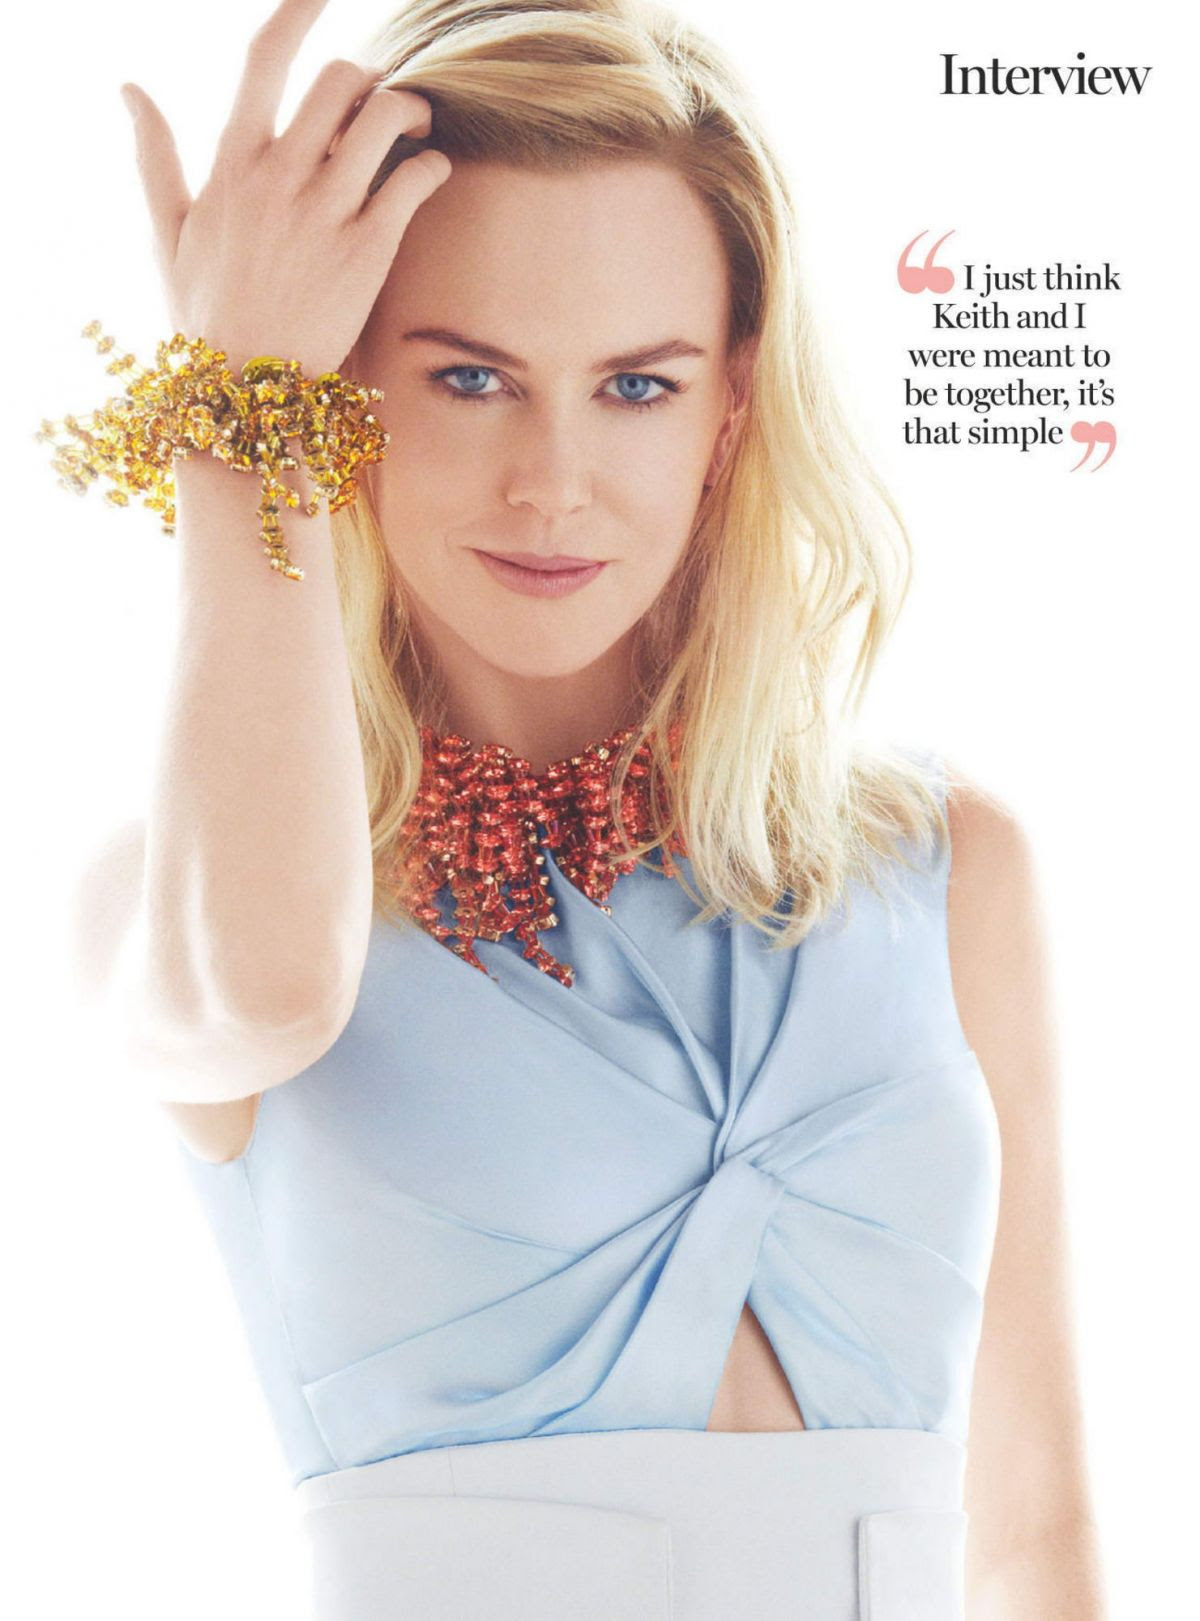 NICOLE KIDMAN in Marie Claire Magazine, Australia April 2016 Issue